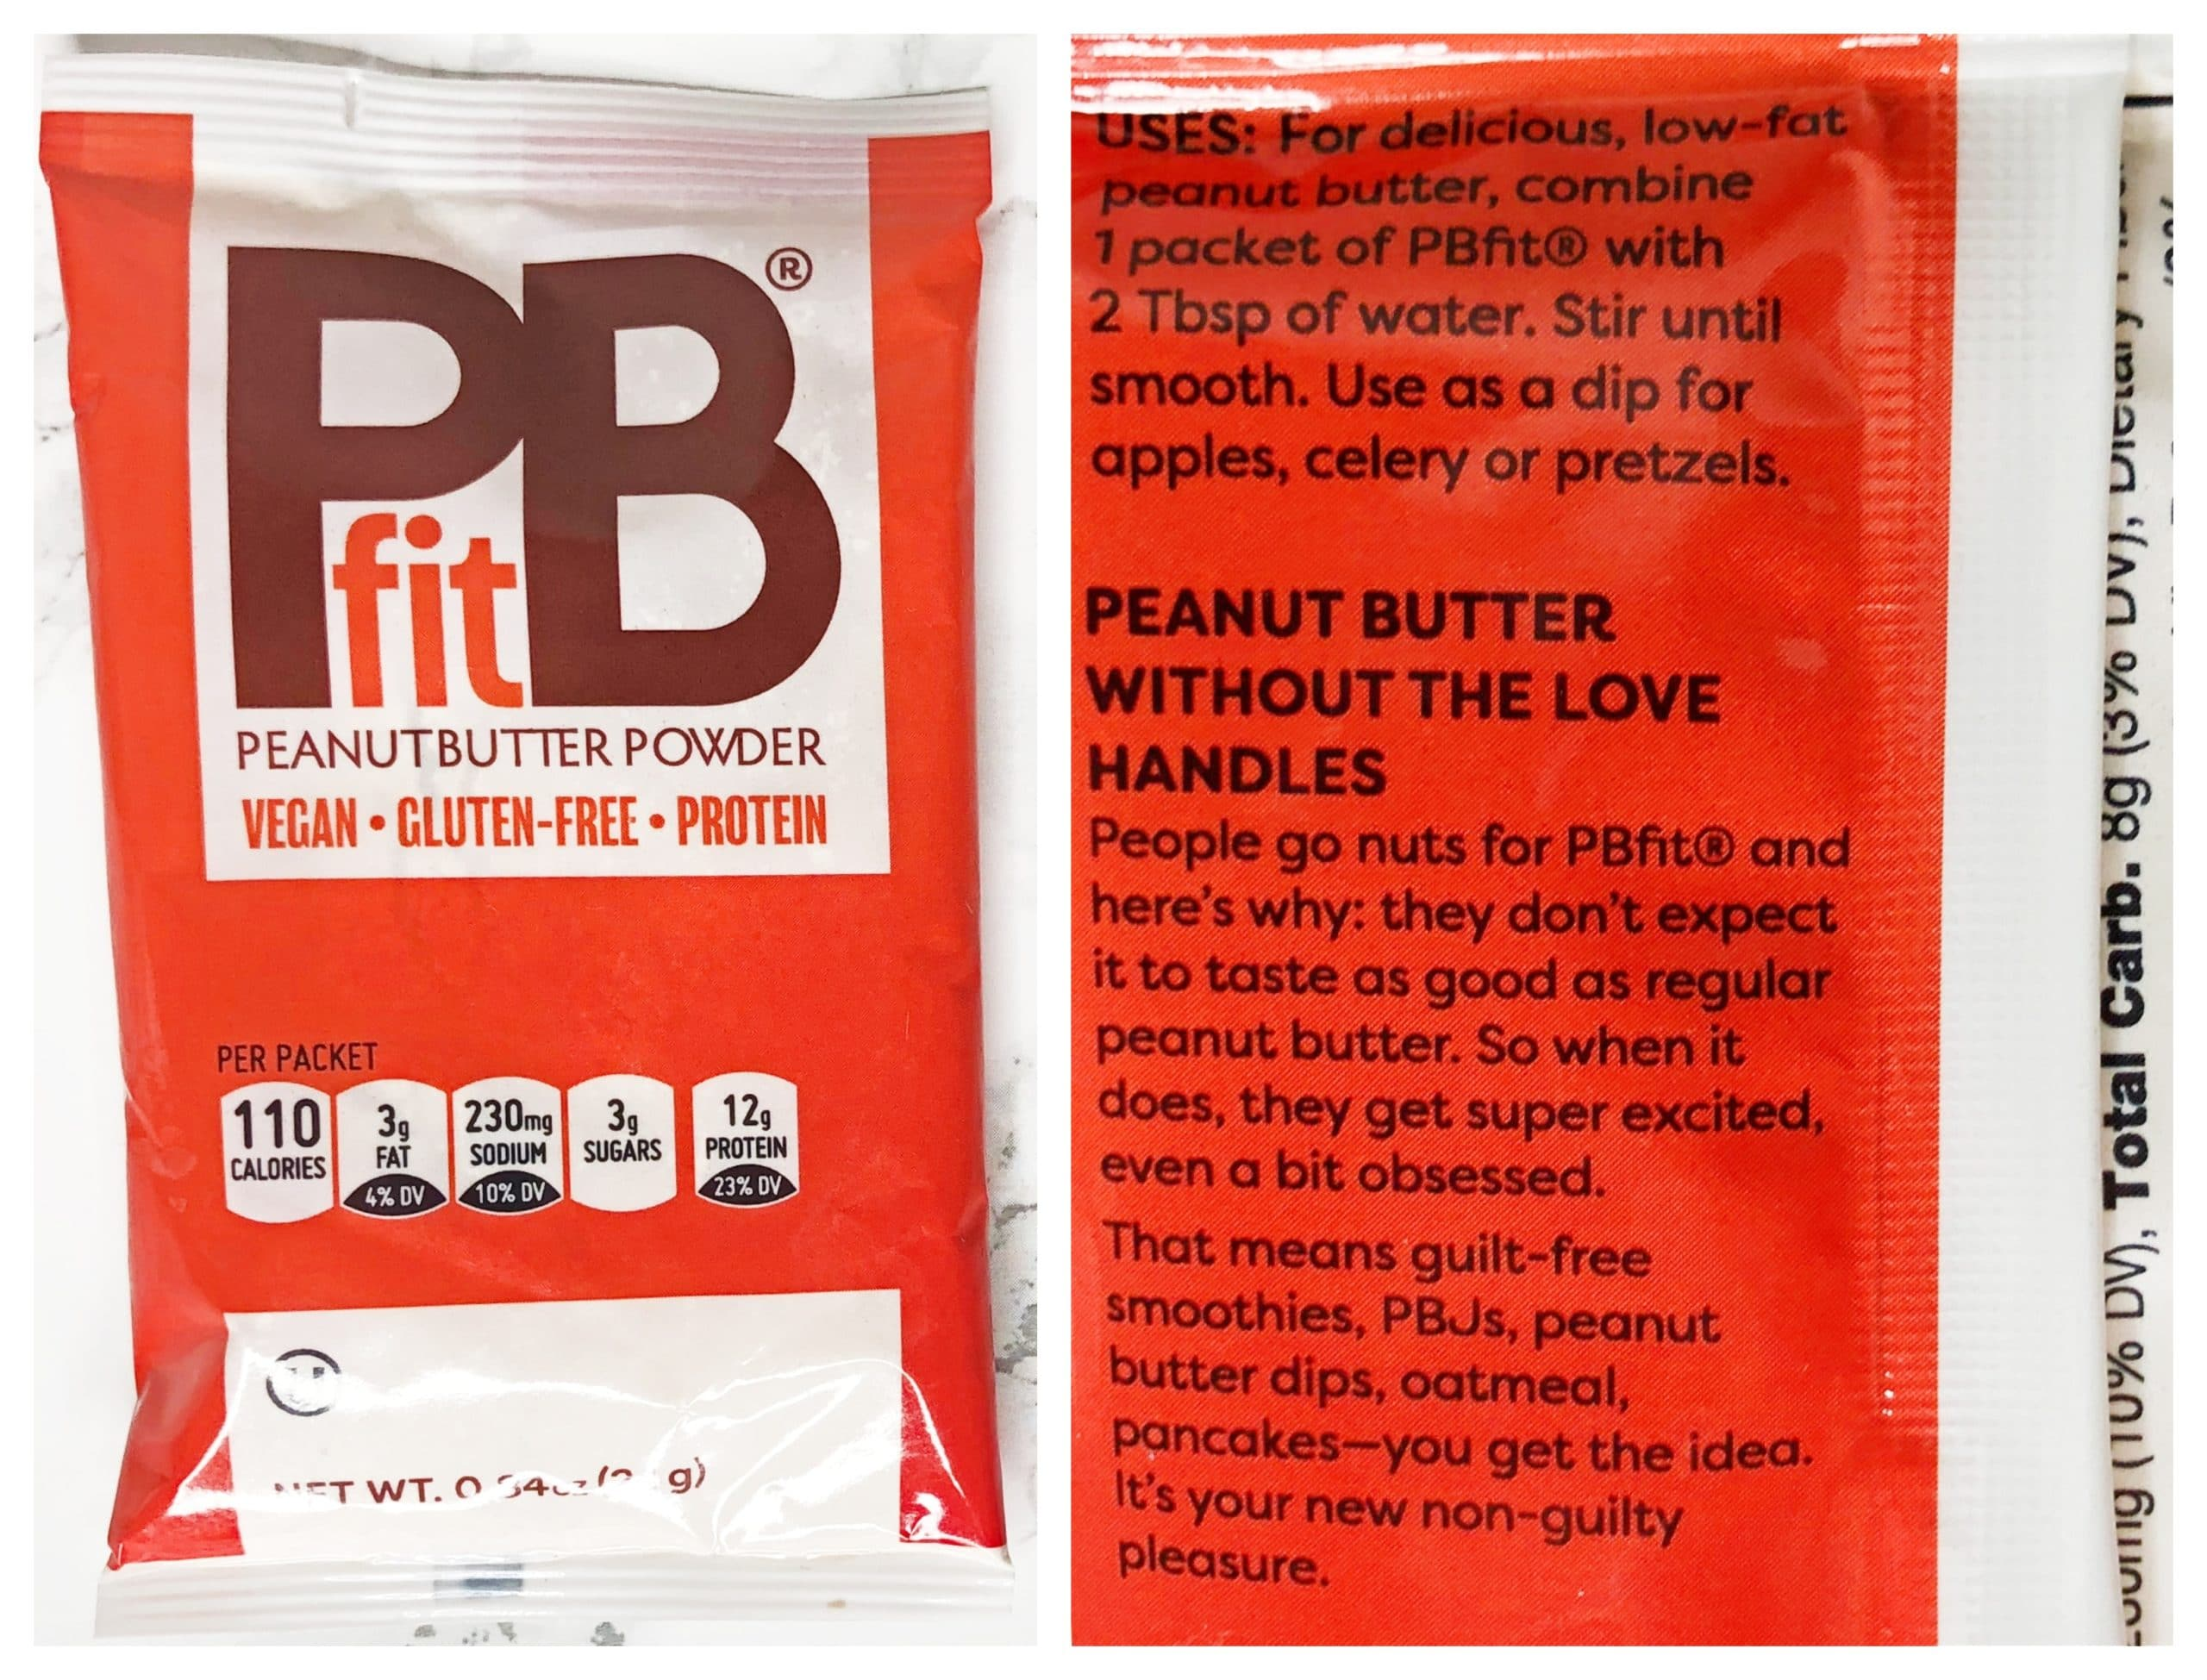 Urthbox Reviews - PBfit